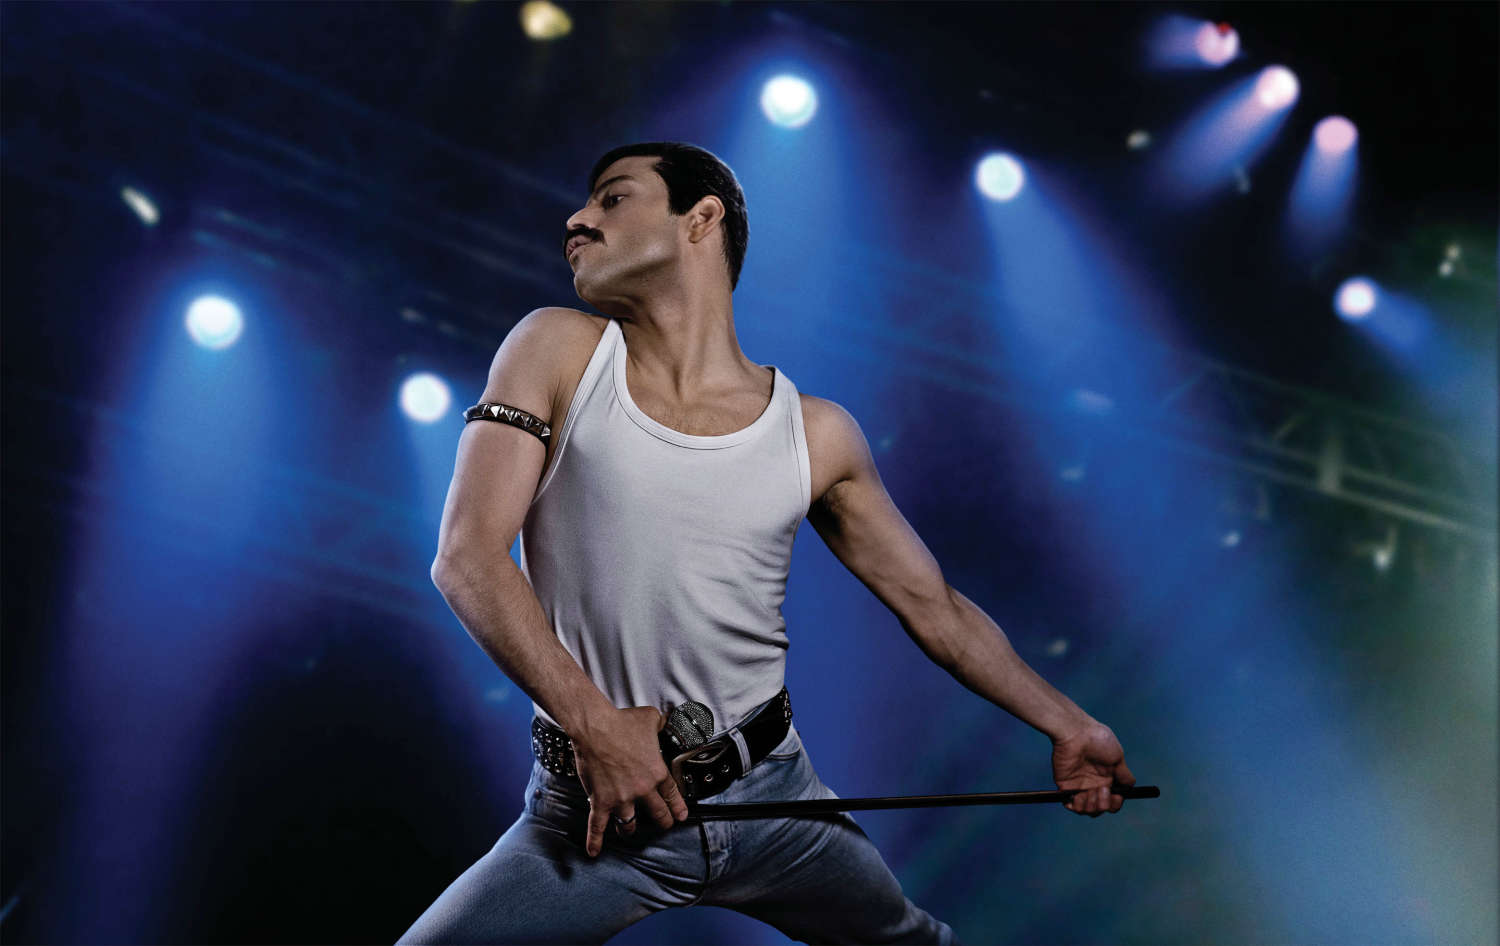 The show mus go on: Rami Malek als Freddie Mercury im Queen-Biopic. Foto: Bohemian Rhapsody / 20th Century Fox